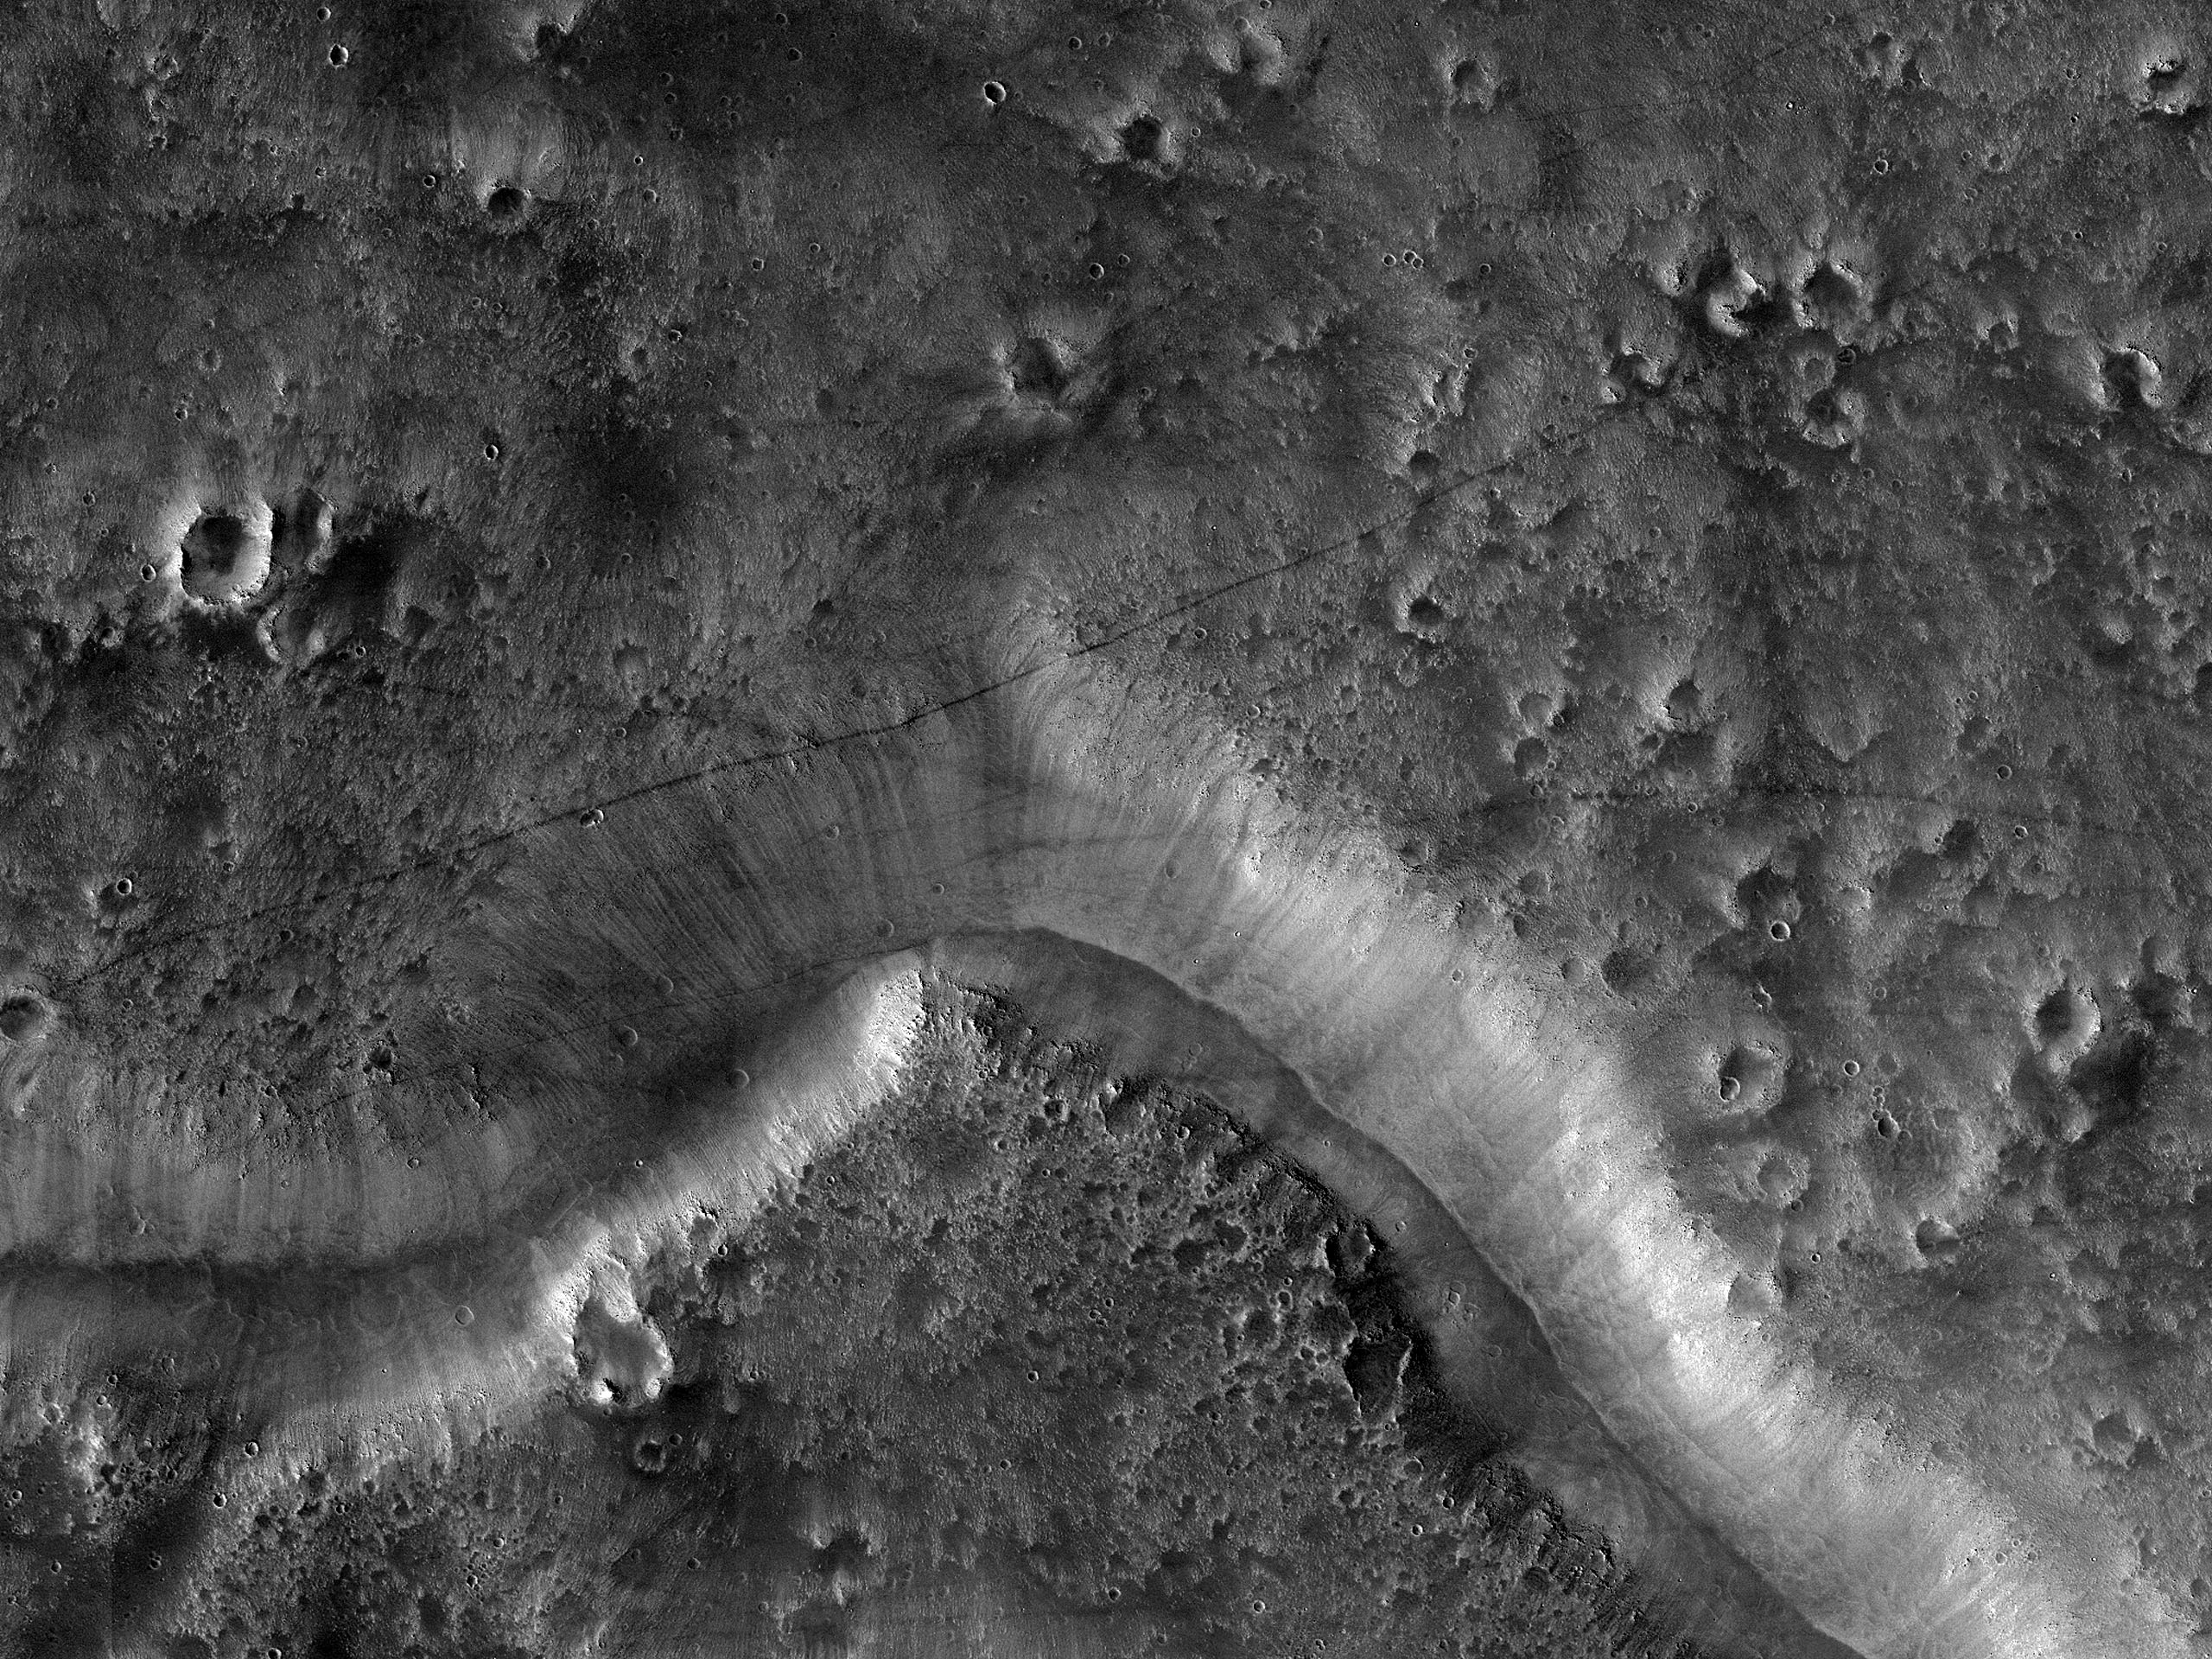 Daedalia Planum Albedo Pattern and Wind Streak Monitoring Site